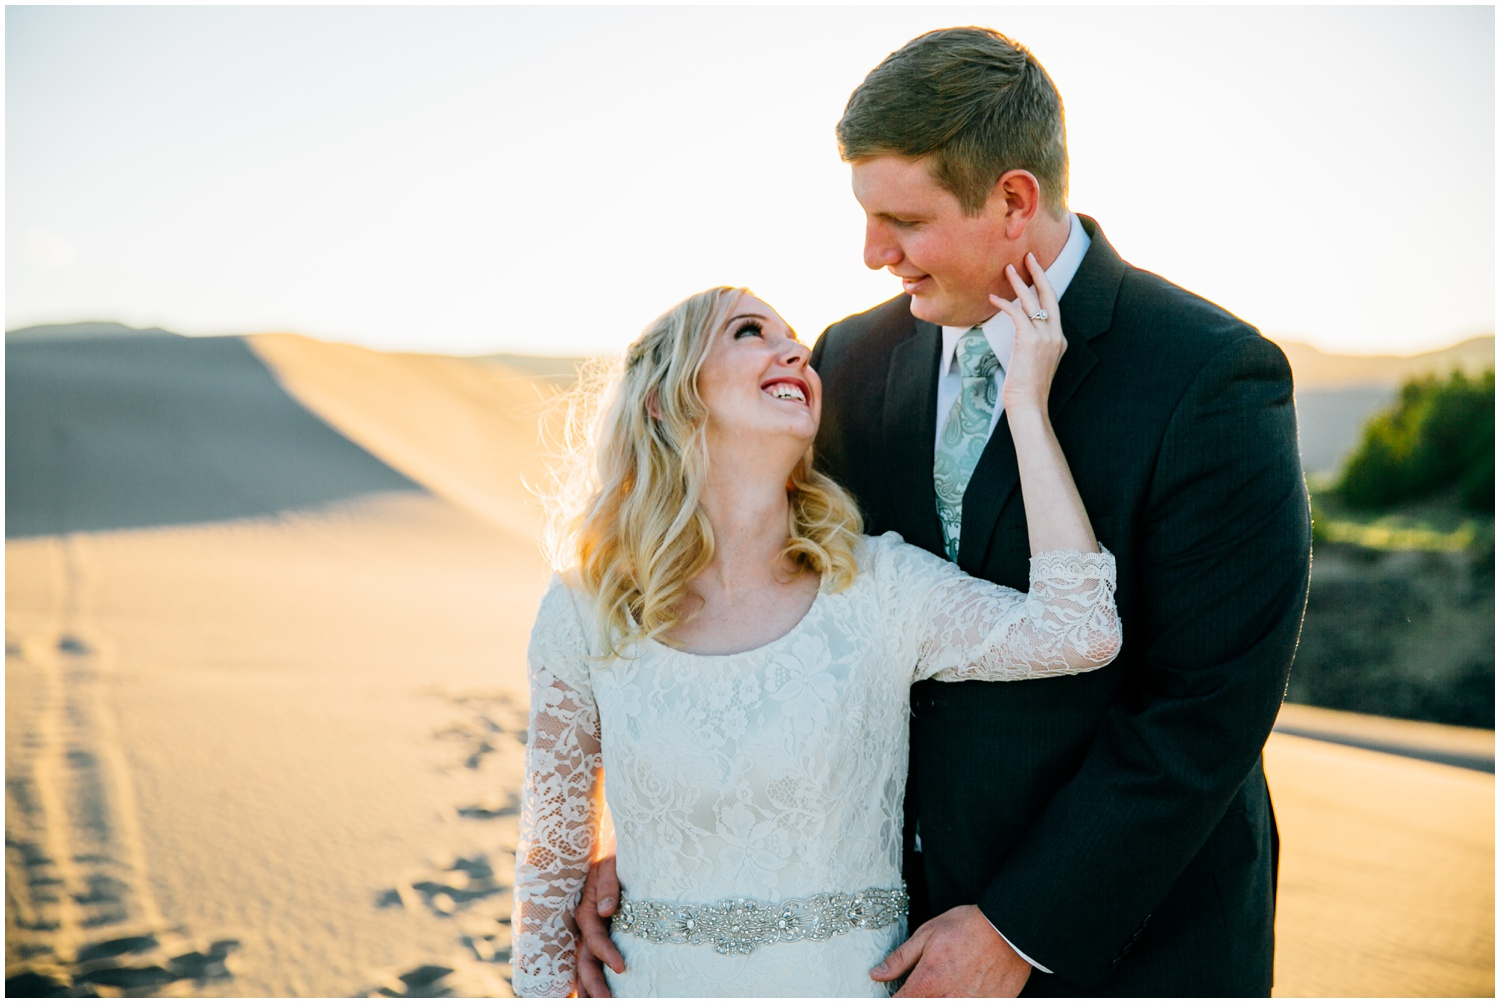 saint-anthony-sand-dunes-bridals-idaho-engagements-colorado-wyoming-wedding-photographer_0741.jpg